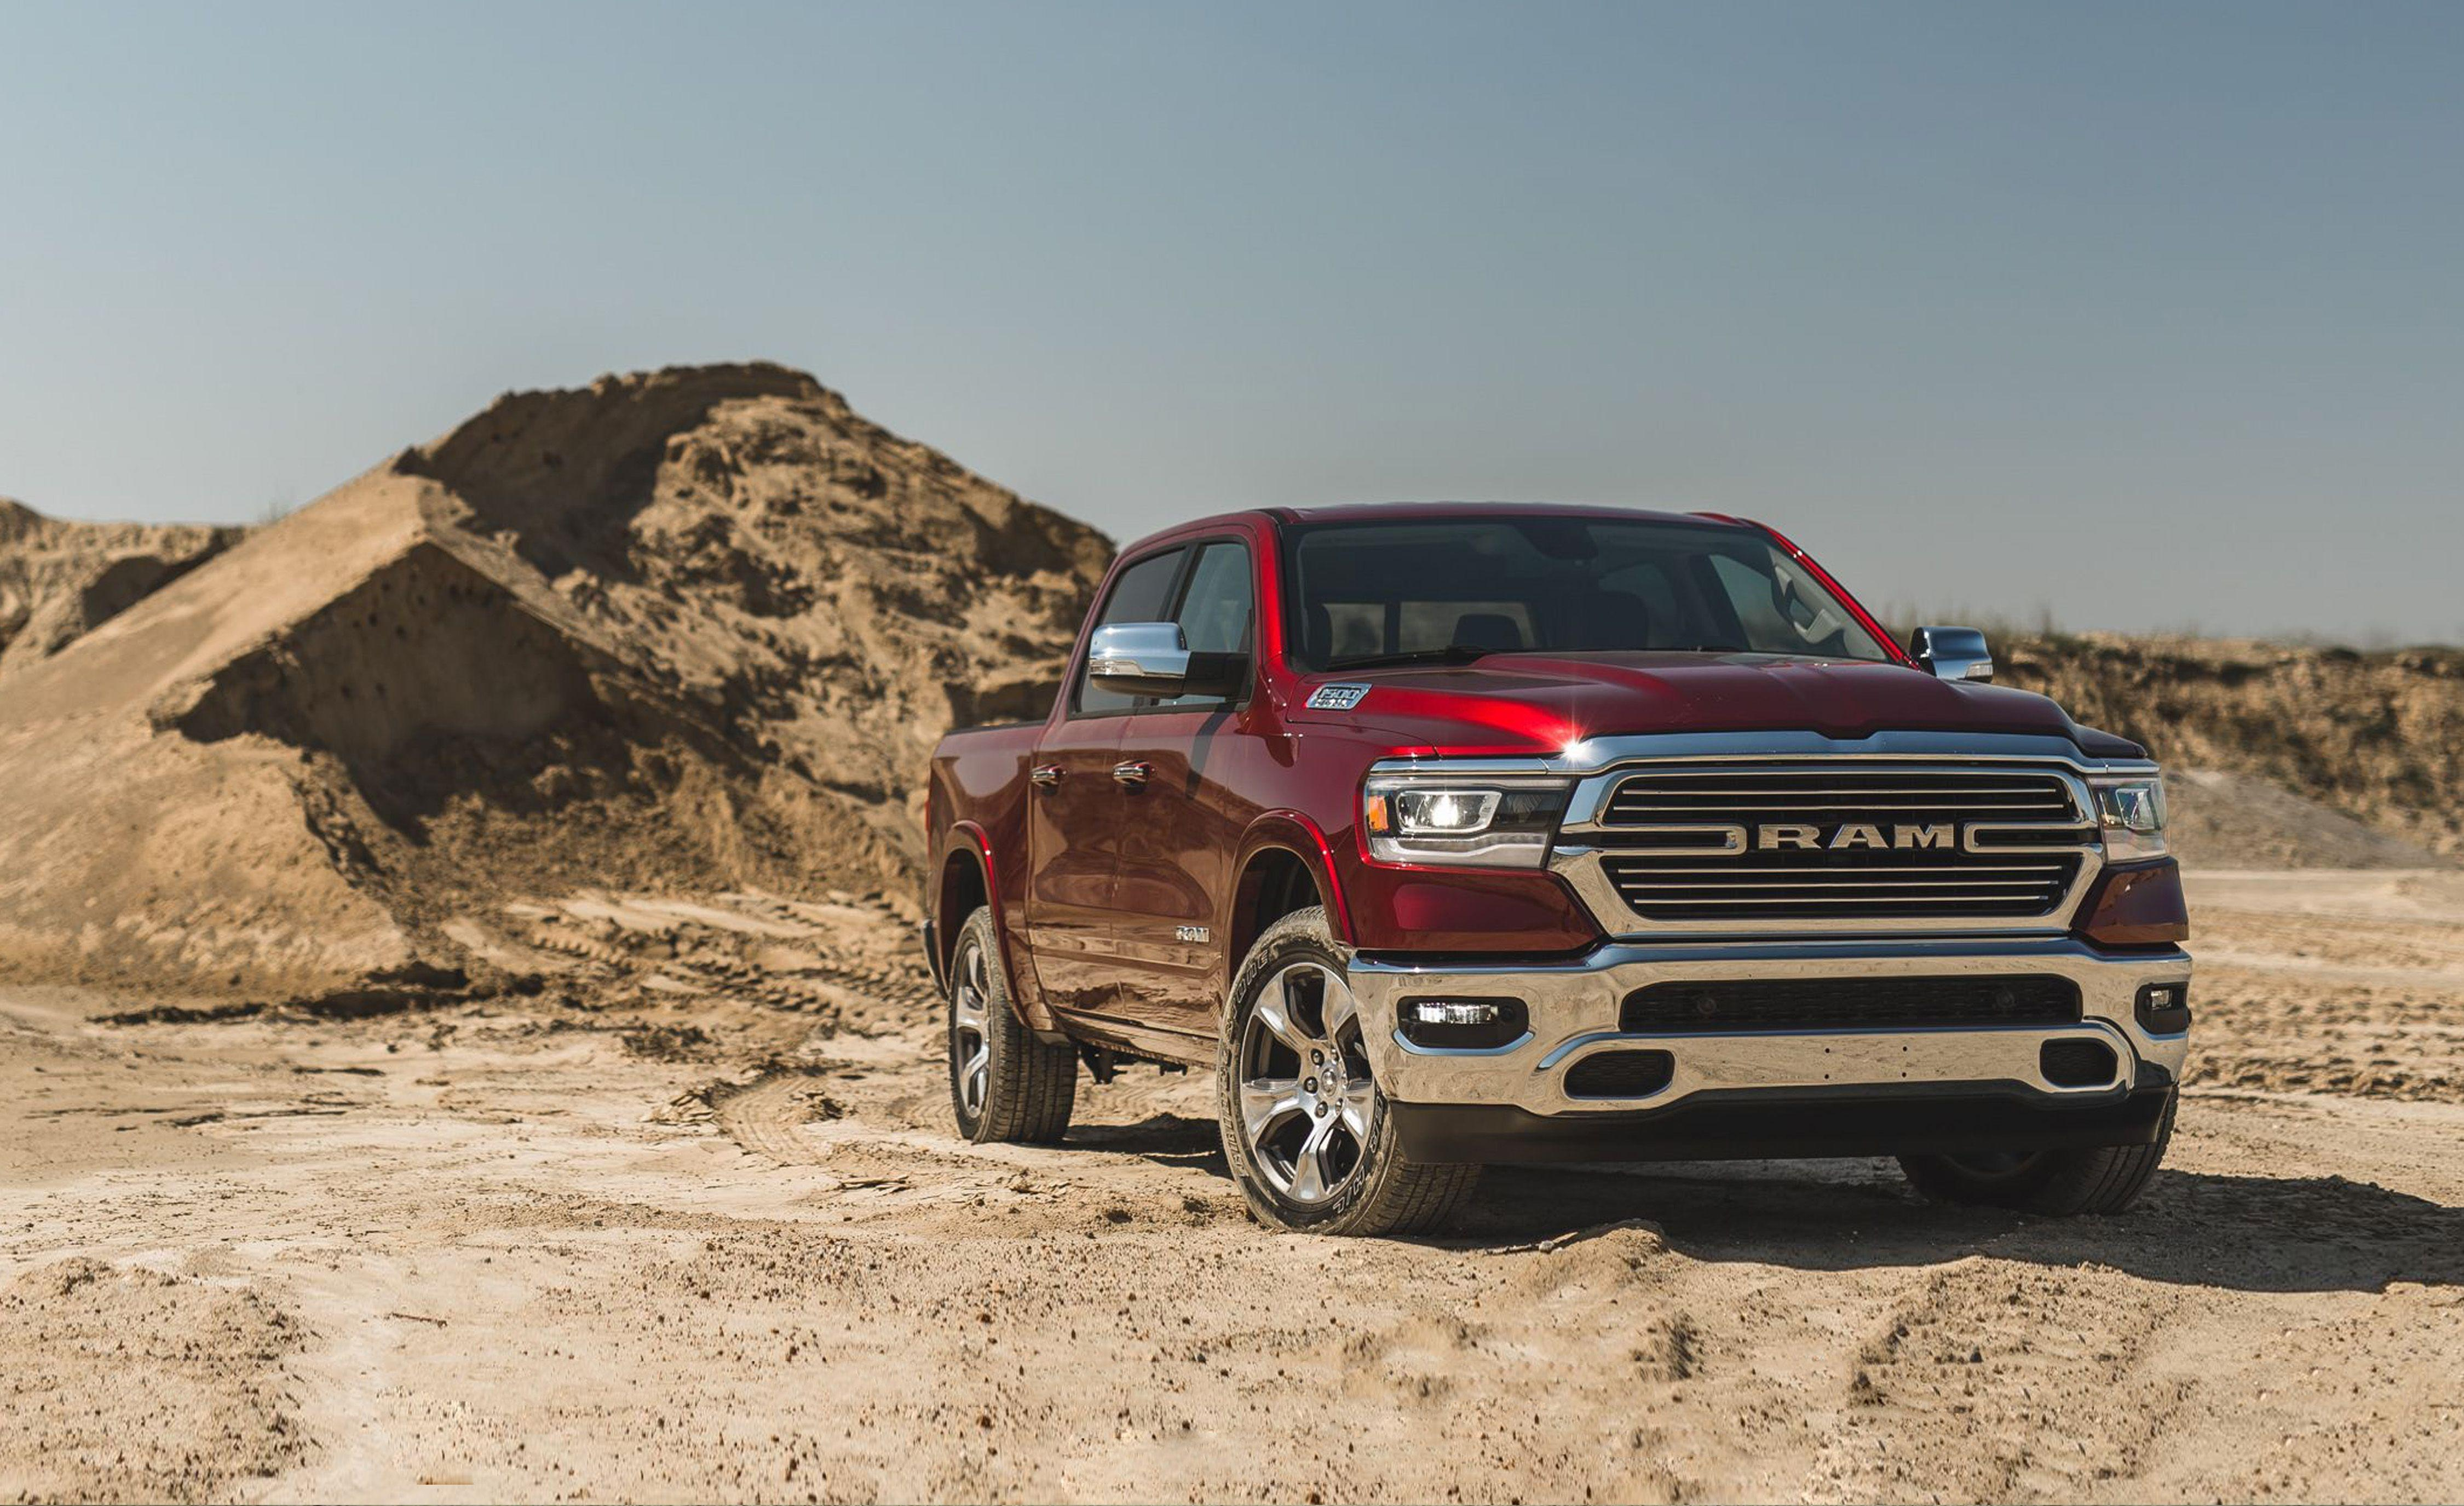 The 25 Best-Selling Cars, Trucks, and SUVs of 2019 (So Far)